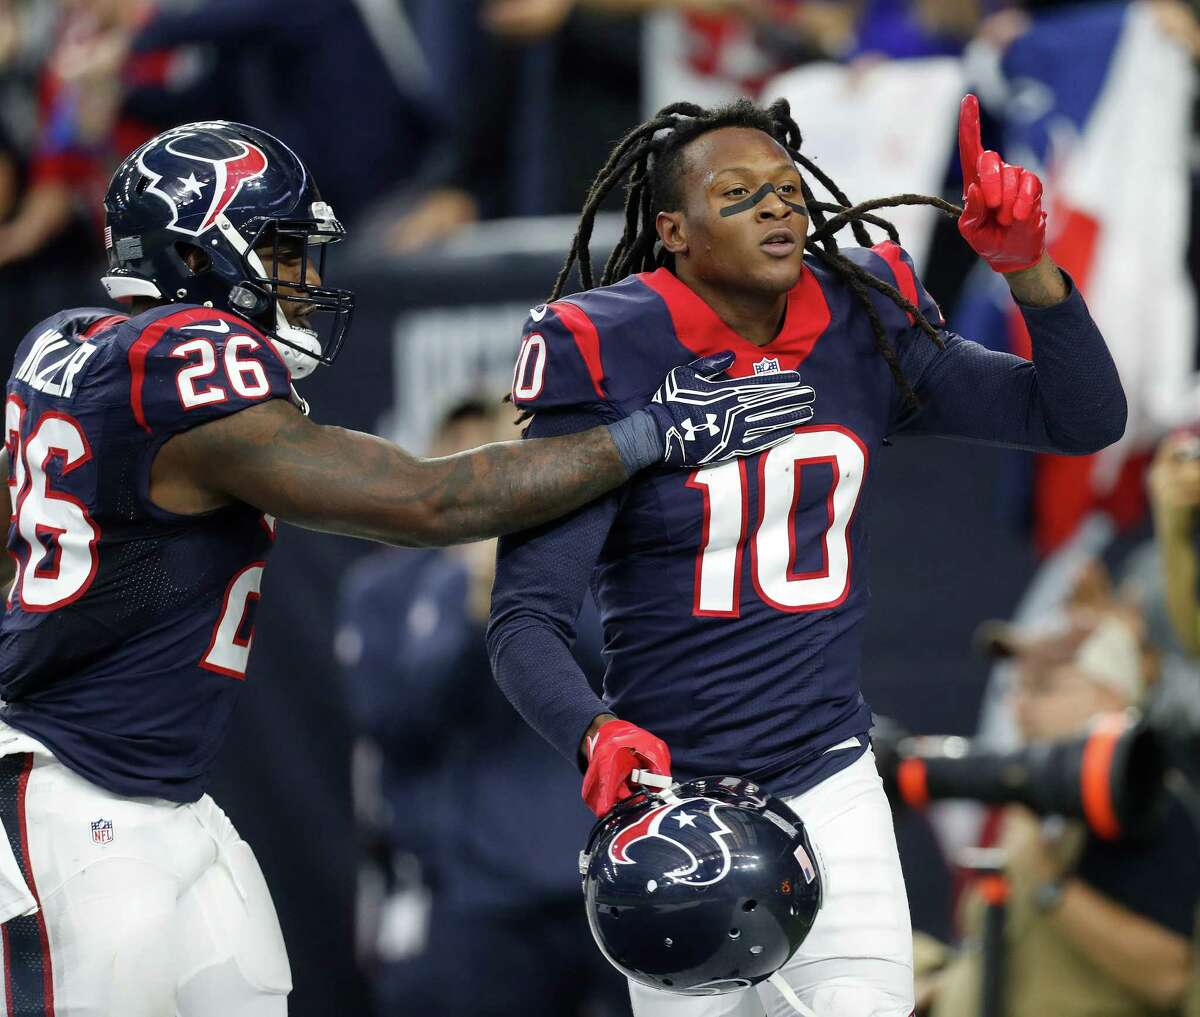 JOHN McCLAIN'S GRADES FOR PLAYOFF WIN OVER THE RAIDERS Wide receiver/tight end DeAndre Hopkins caught five passes for 67 yards and a touchdown. Will Fuller added four receptions. Ryan Griffin and C.J. Fiedorowicz combined for five receptions. Grade: C